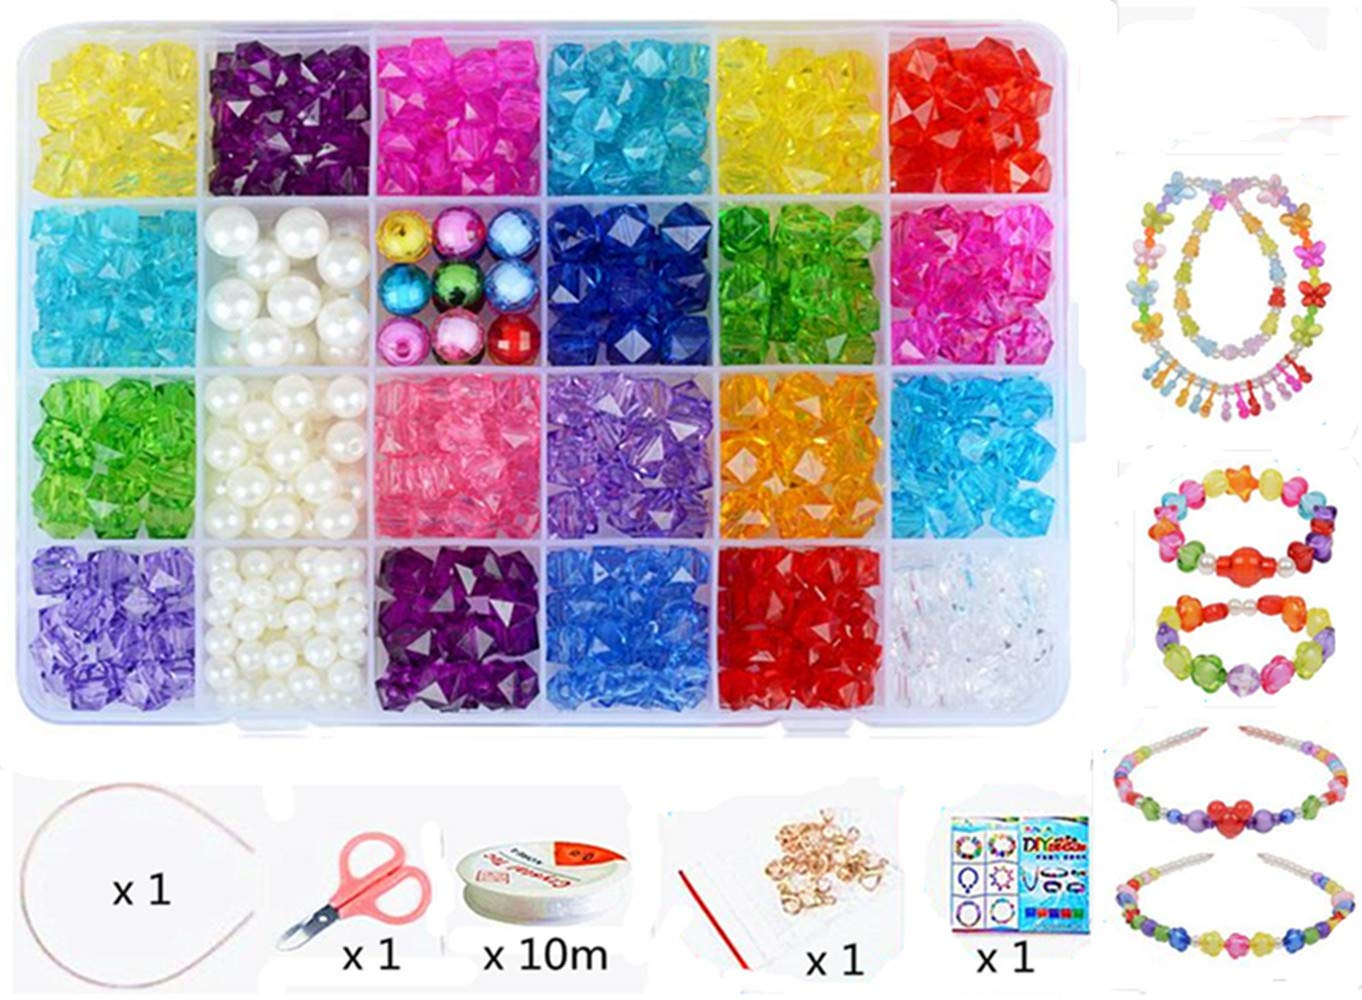 Vytung Beads Set for Jewelry Making Kids Adults Children Craft DIY Necklace Bracelets Letter Alphabet Colorful Acrylic Crafting Beads Kit Box with Accessories(color#1) Wtong YT002